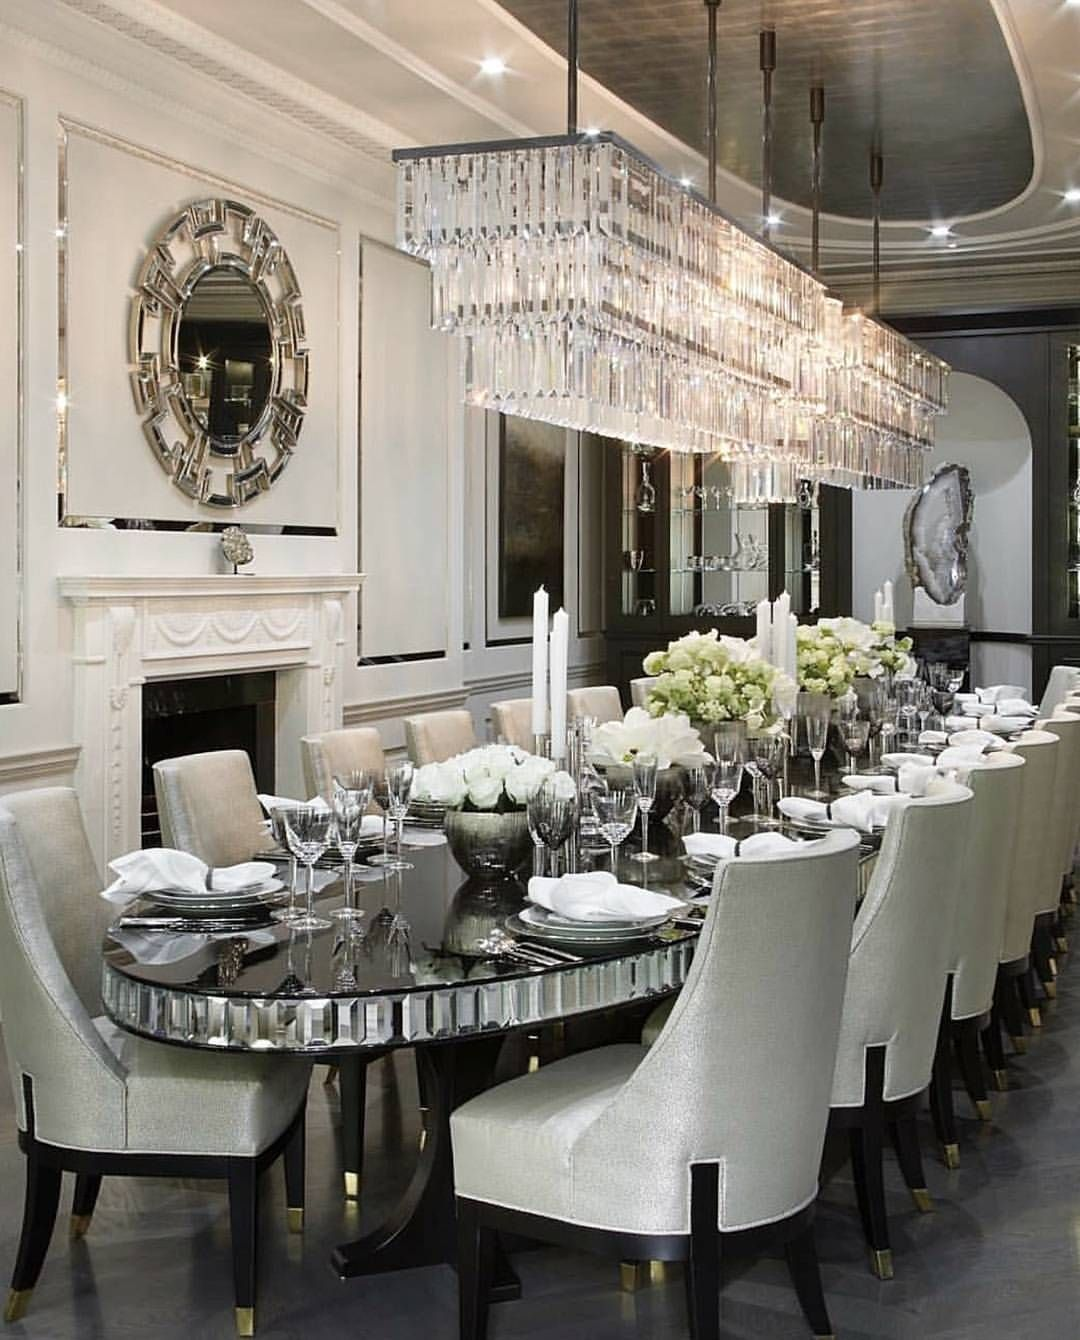 10 Inspirational Dining Room Ideas On Insplosion Blog Luxury